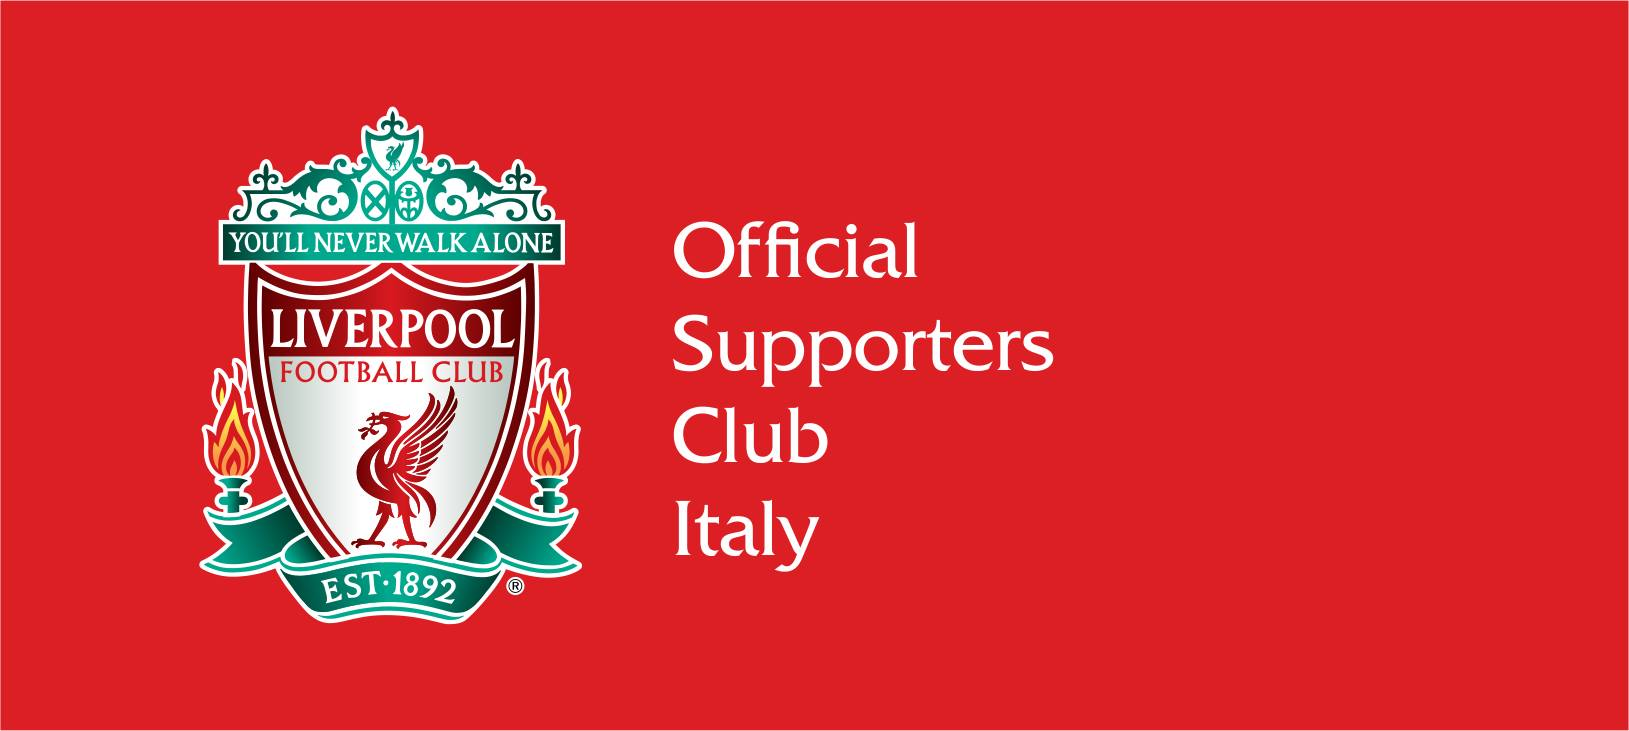 Liverpool, Official Supporters Club Italy